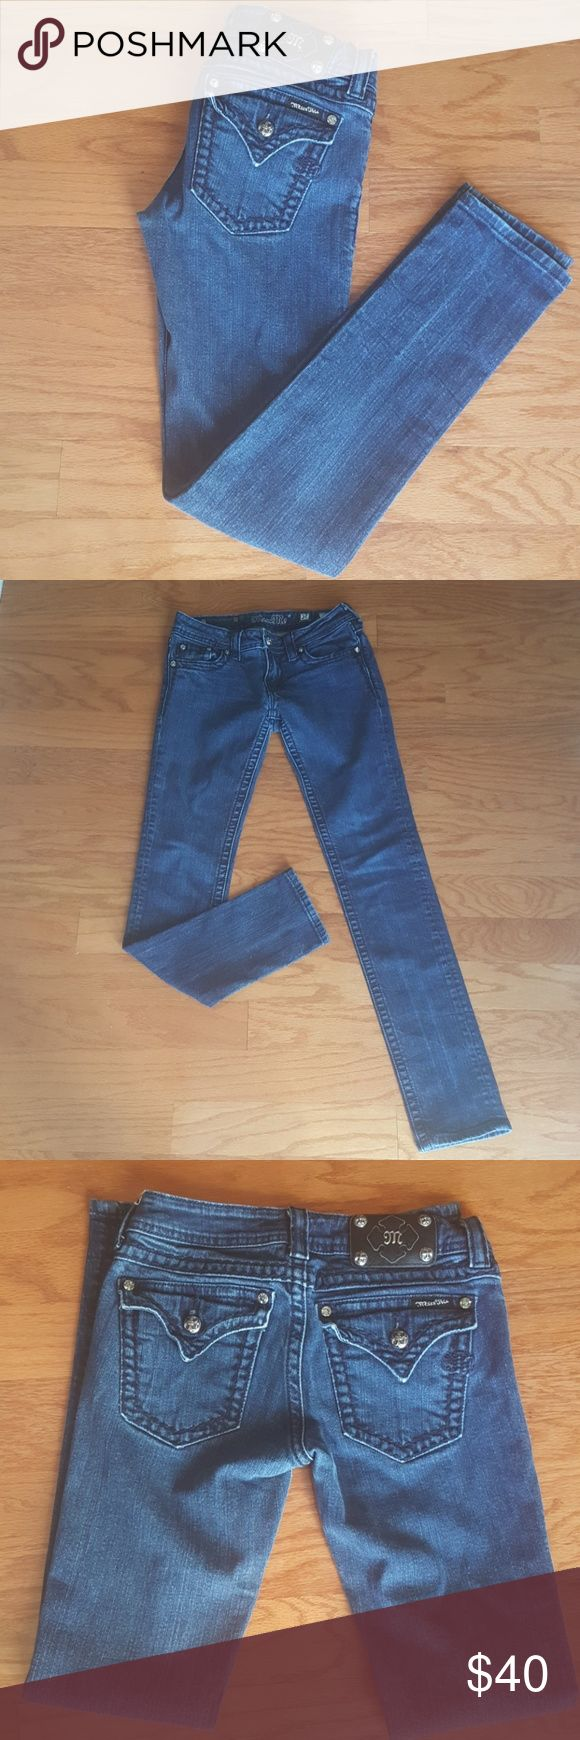 """SALE~Miss Me Skinny Jeans ~ Size 27 Miss Me Skinny Jeans~ Size 27. Gently Used Condition. Measurements: Waist 24"""", Inseam 31"""". Miss Me Jeans Skinny"""